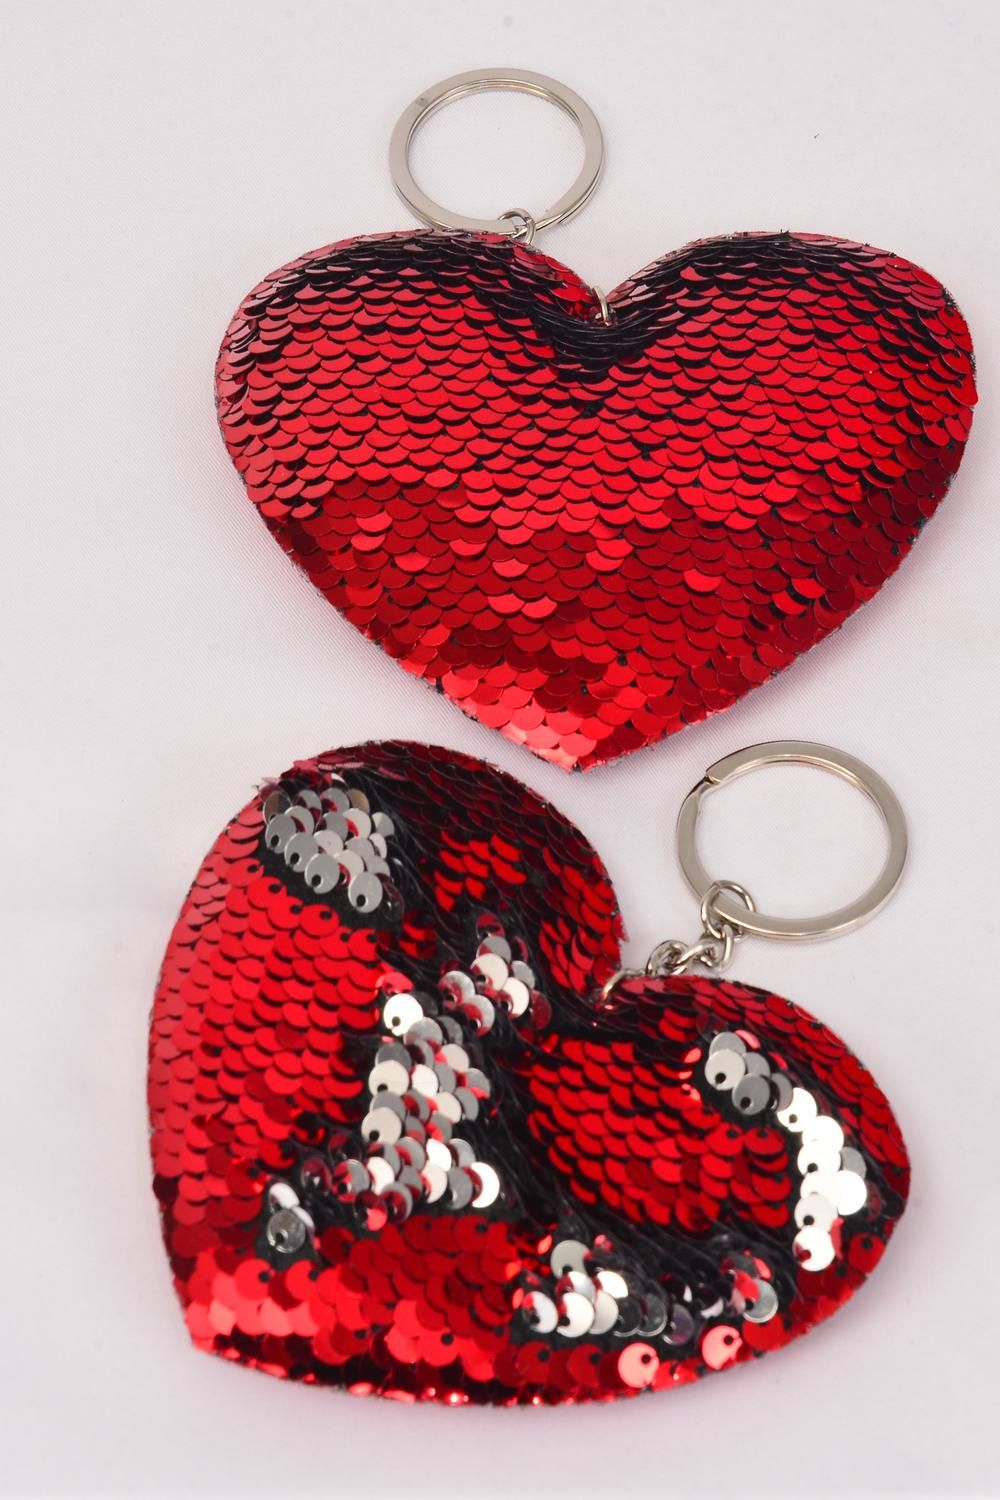 "Key Chain Red Heart Mermaid Sequin Fabric 2 Tone Reversible Dragon Shiny Scale **Red** Size-4.5""x 3.25 Wide, OPP Bag"